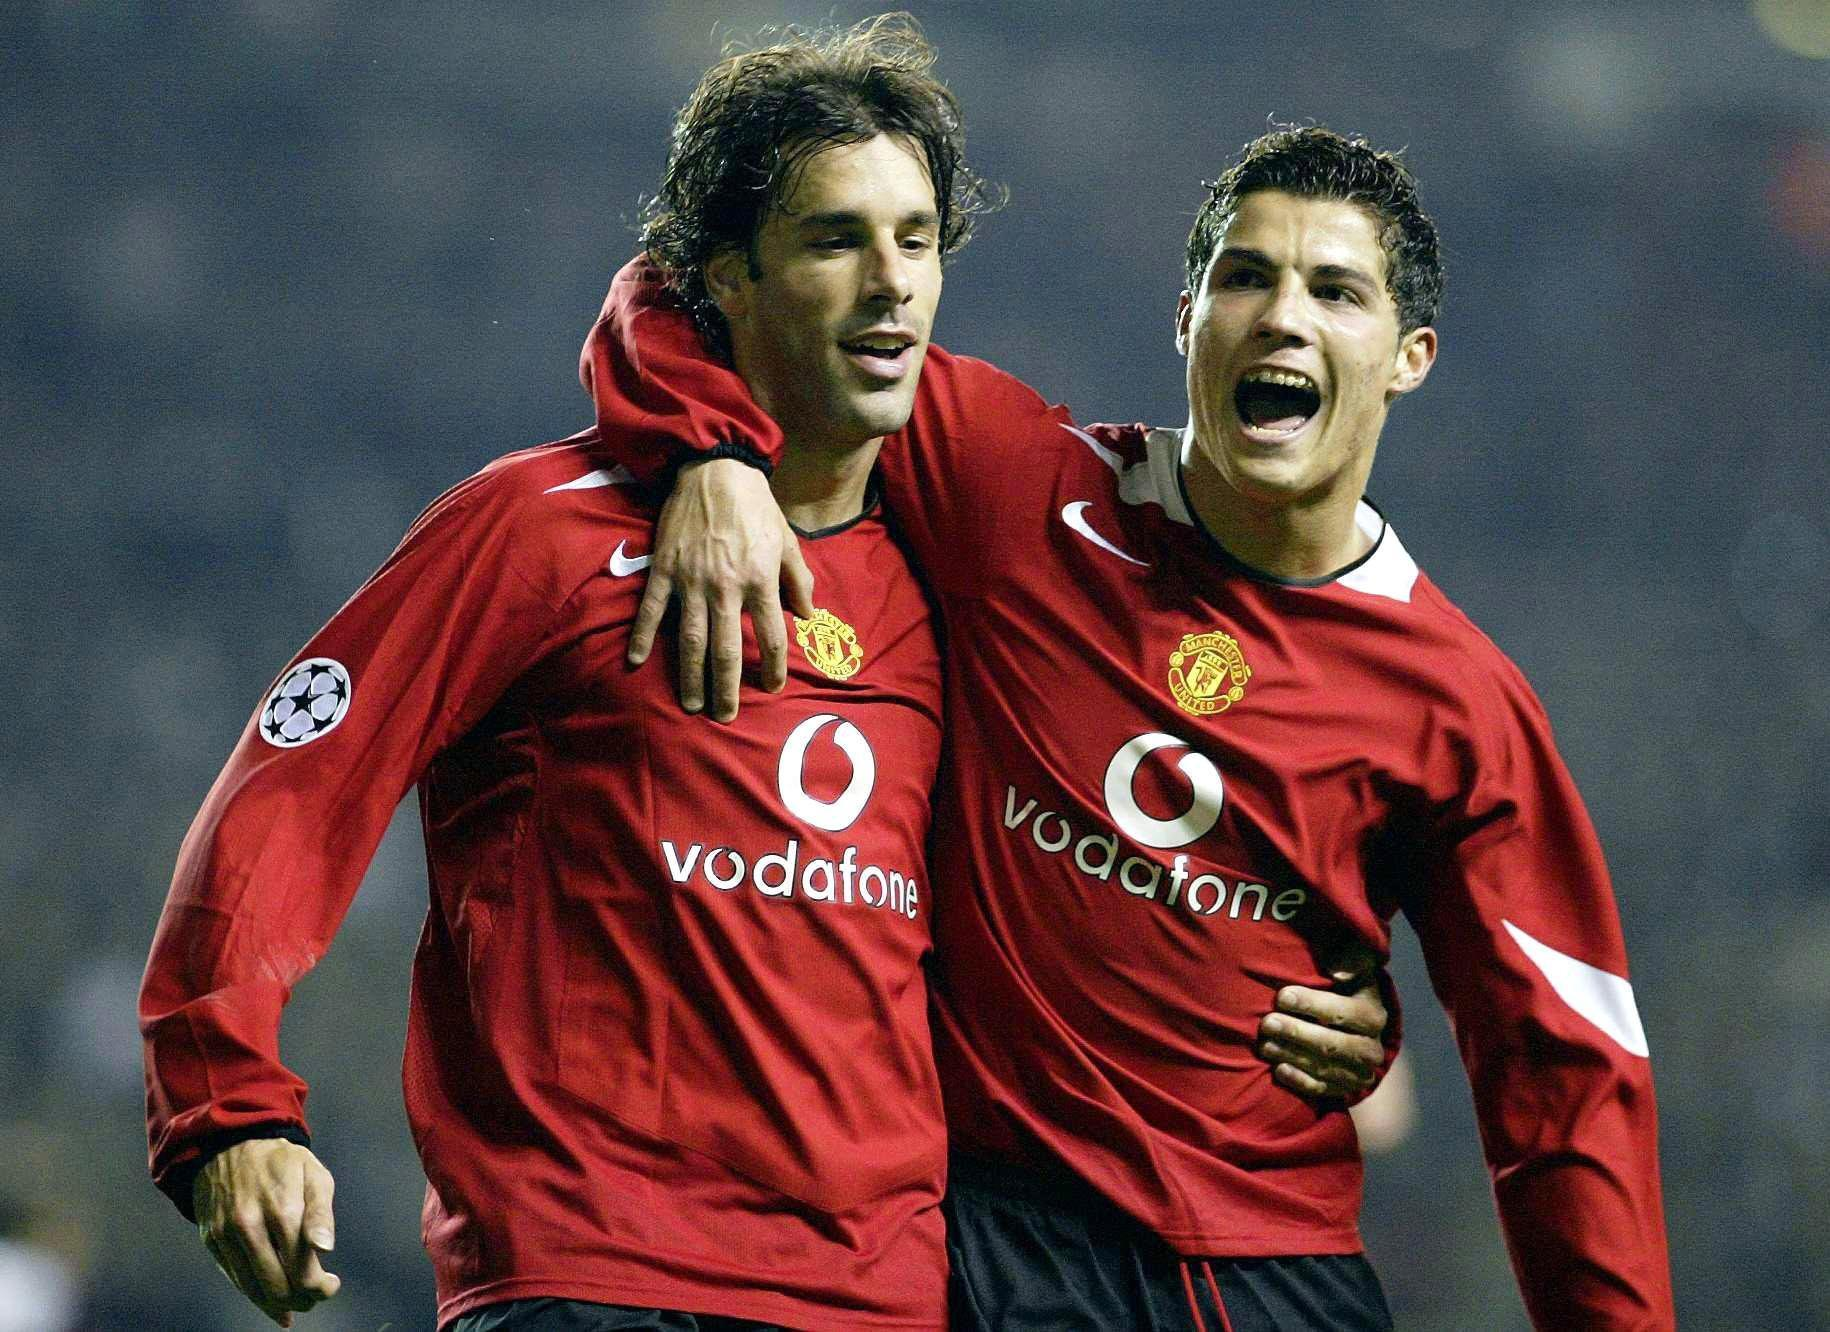 The real reason why Ruud van Nistelrooy left Manchester United in 2006